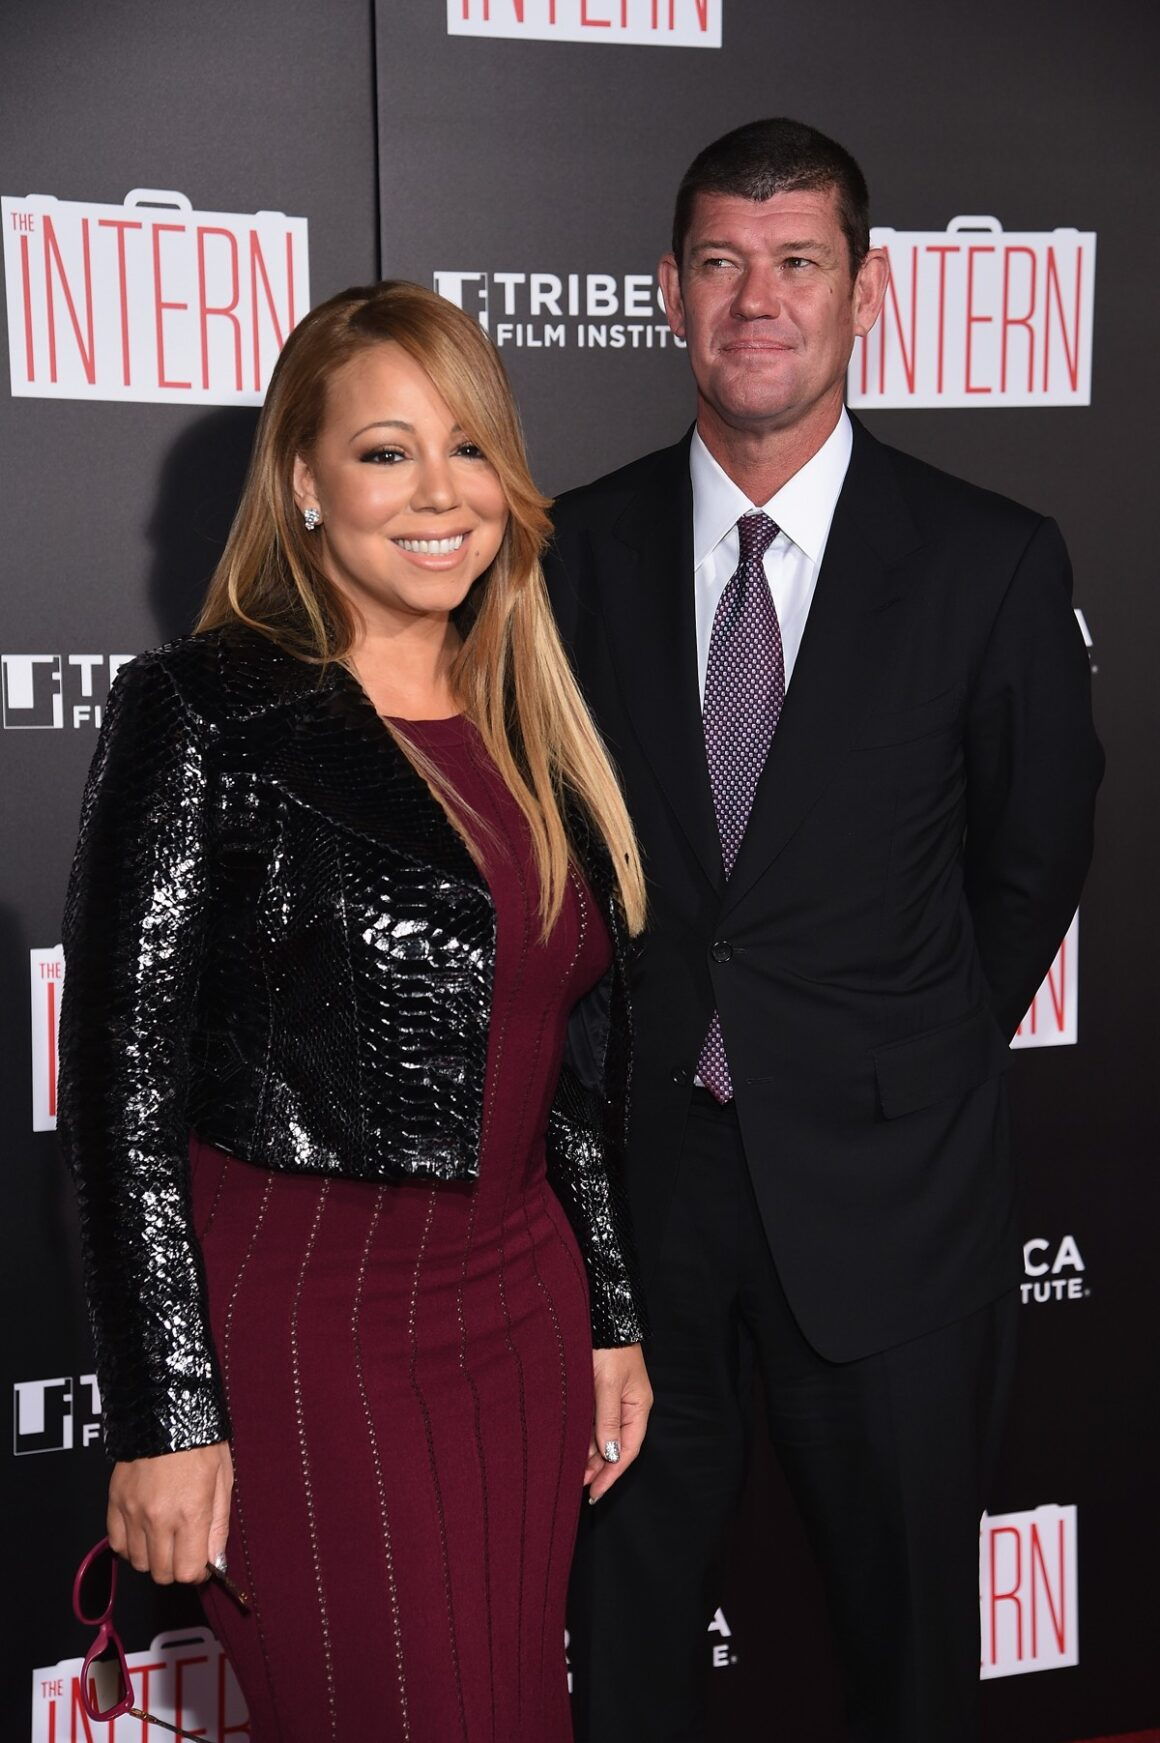 "Mariah Carey and James Packer ""The Intern"" New York Premiere"